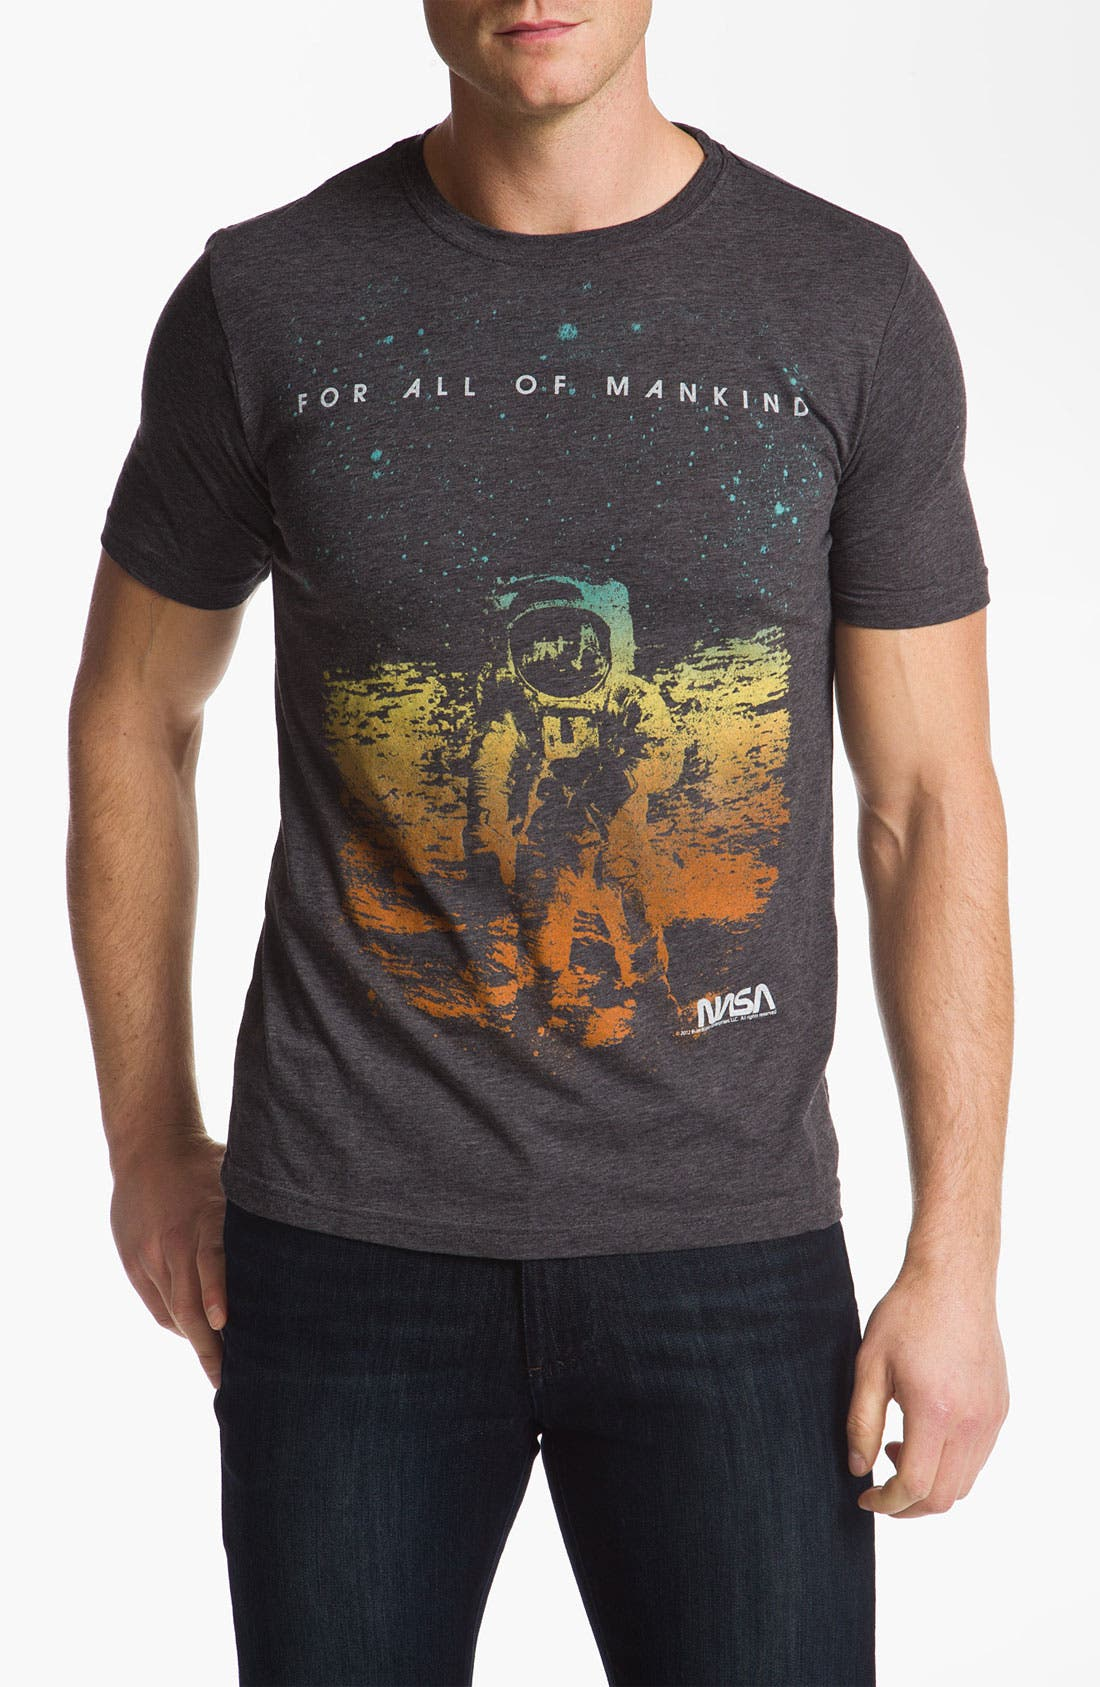 Alternate Image 1 Selected - Free Authority 'NASA Man On Moon' Graphic T-Shirt